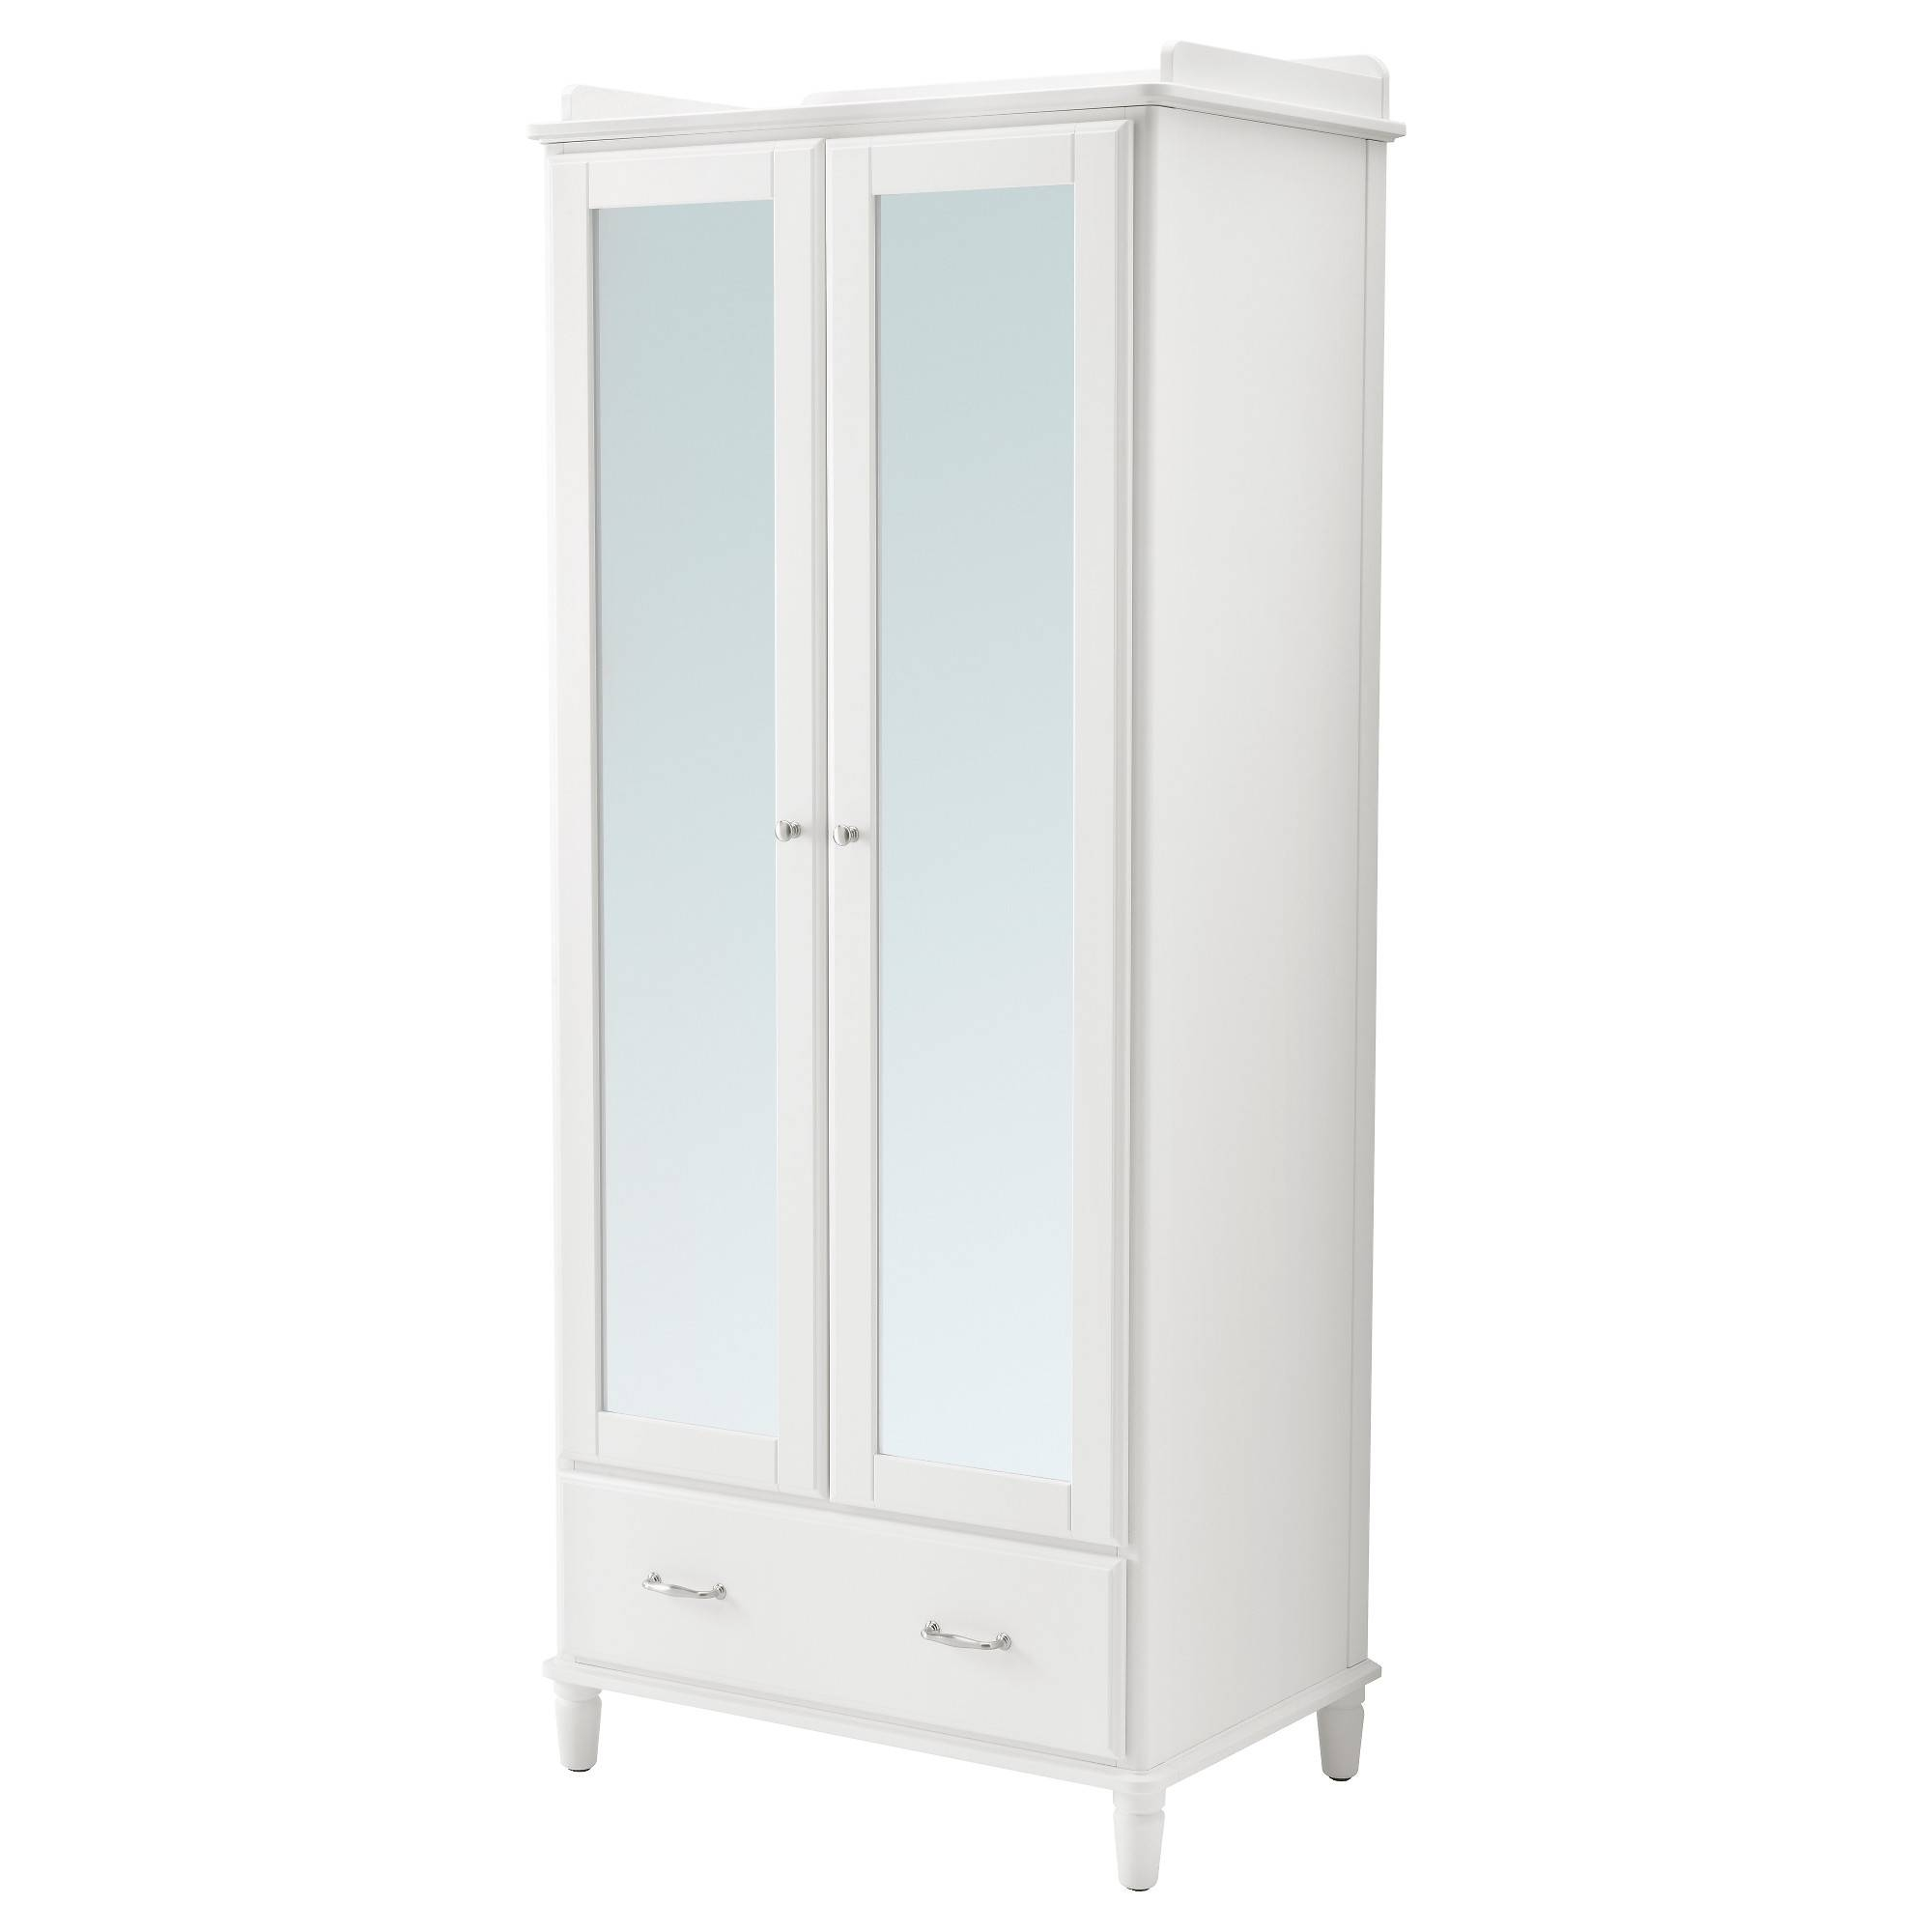 Wardrobes | Ikea throughout White 2 Door Wardrobes With Drawers (Image 15 of 15)